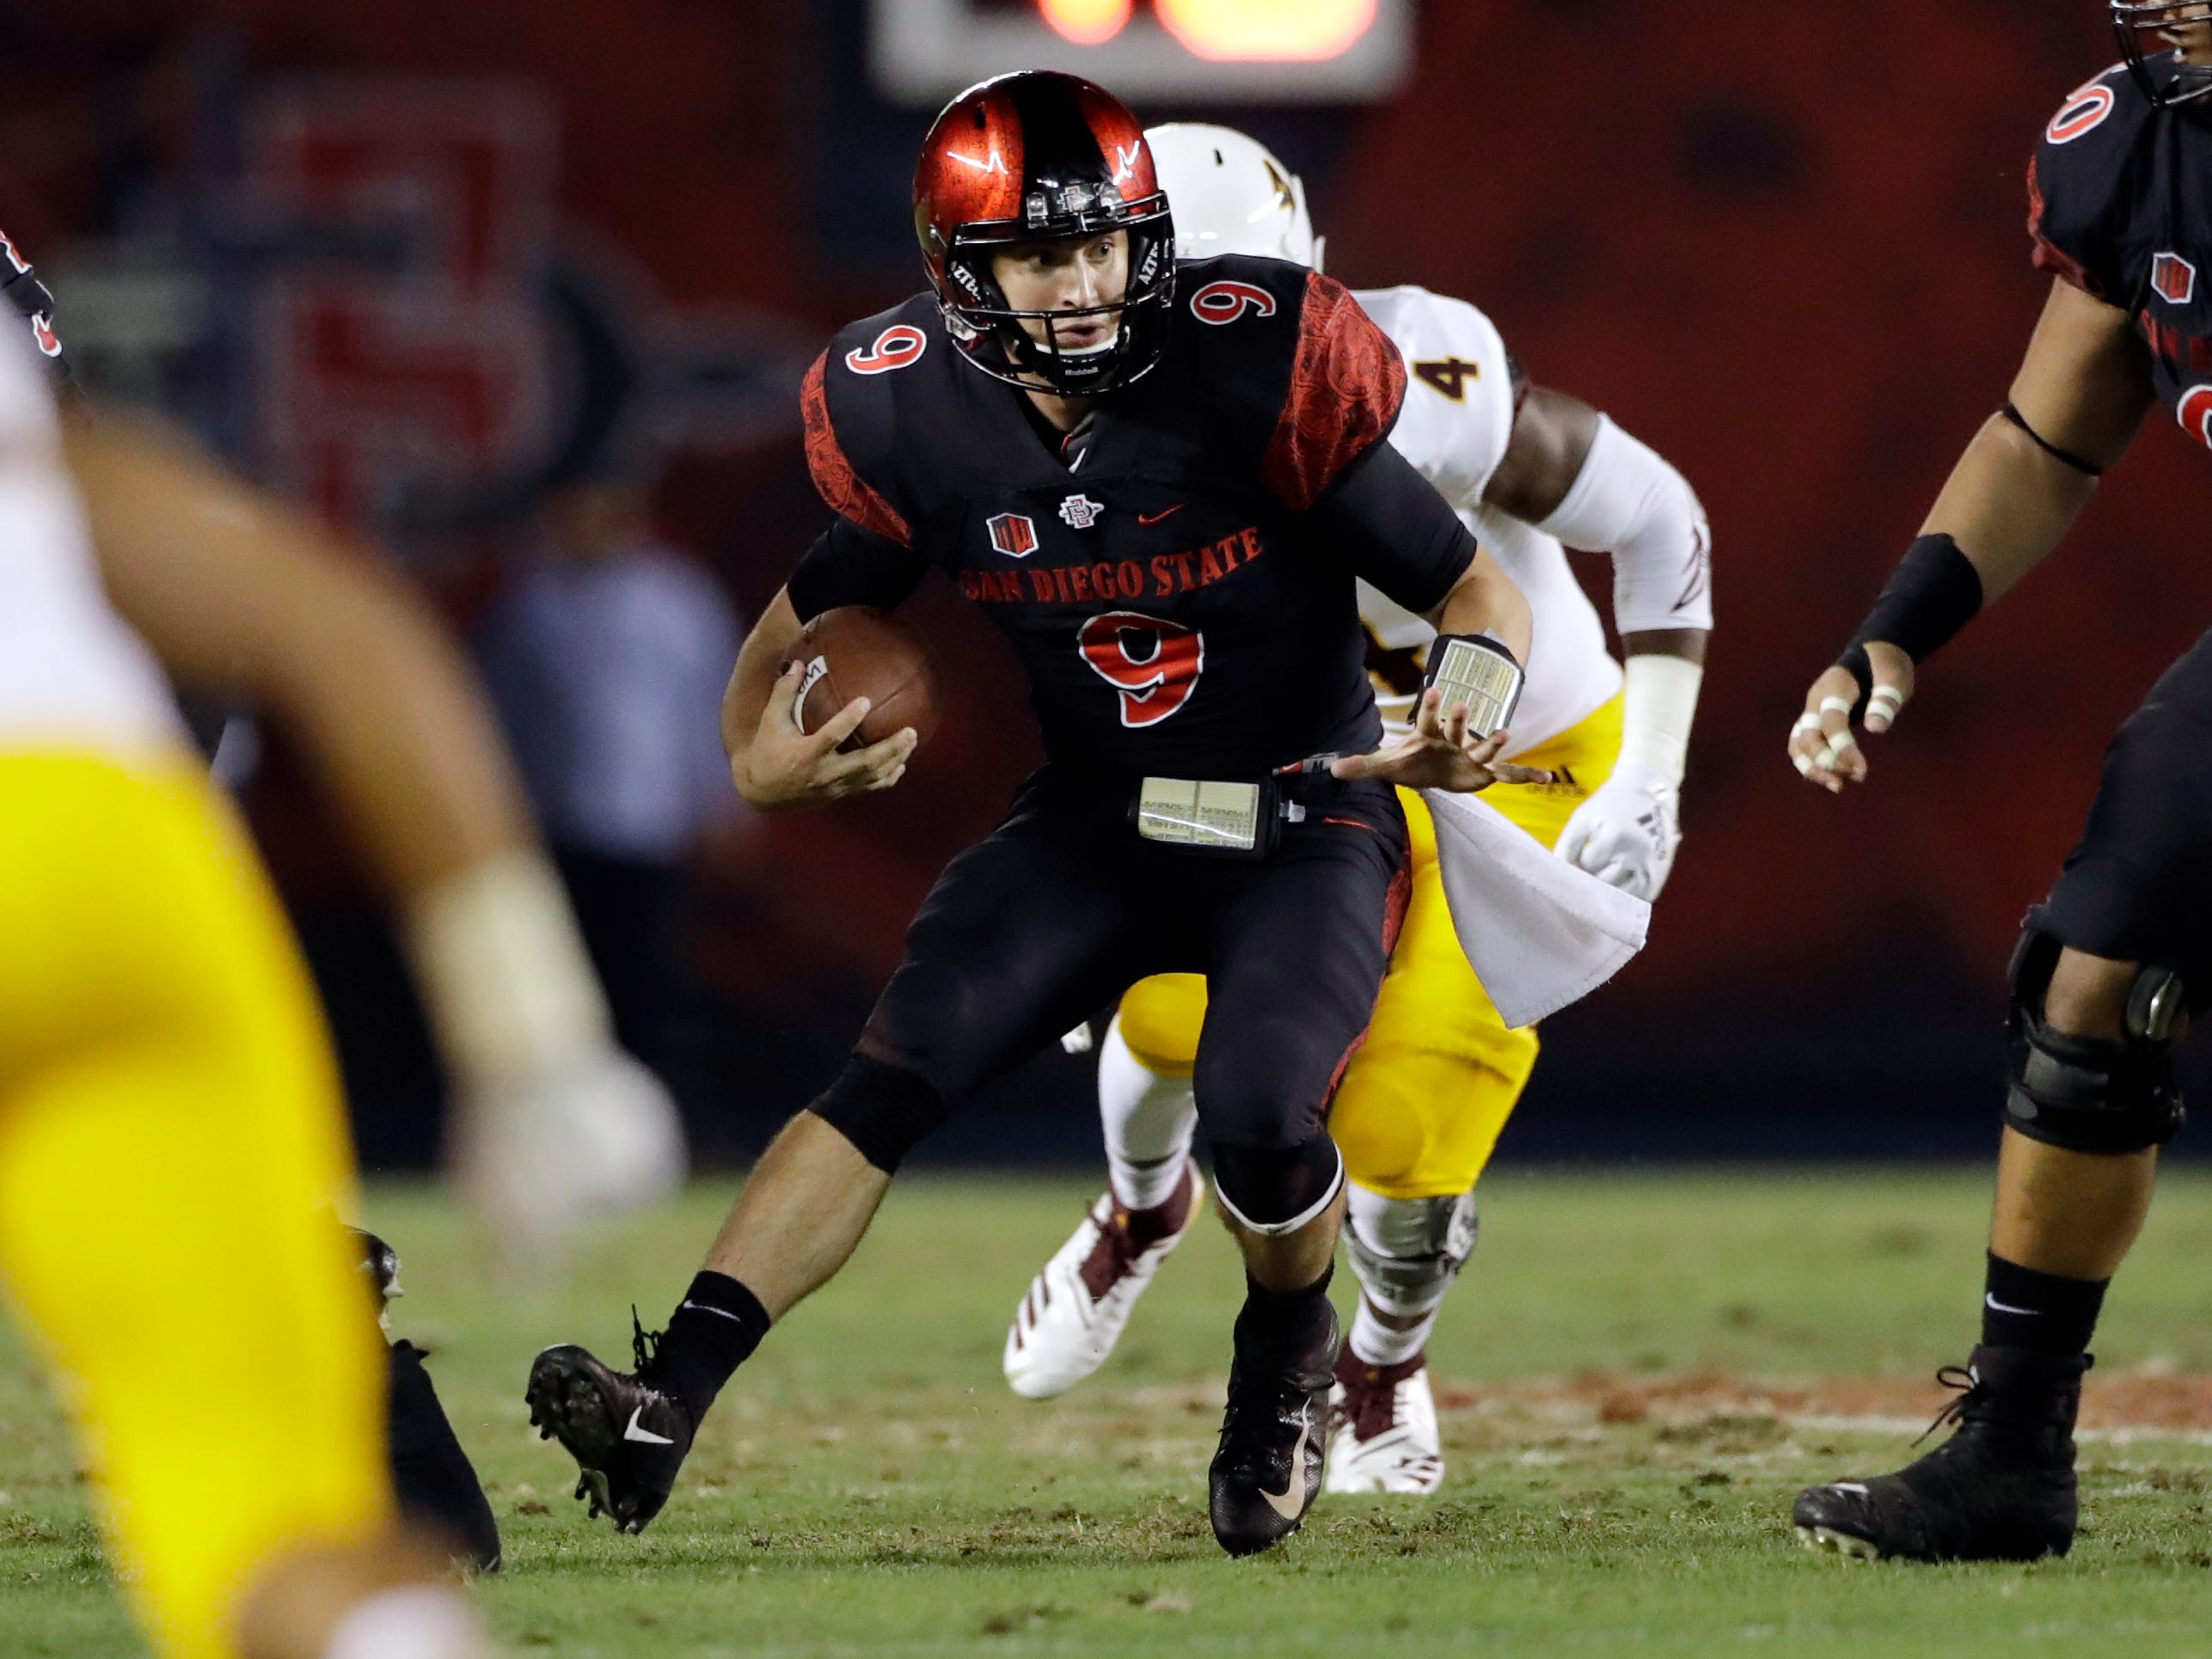 San Diego State quarterback Ryan Agnew runs with the ball during the first half of an NCAA college football game against Arizona State, Saturday, Sept. 15, 2018, in San Diego. (AP Photo/Gregory Bull)